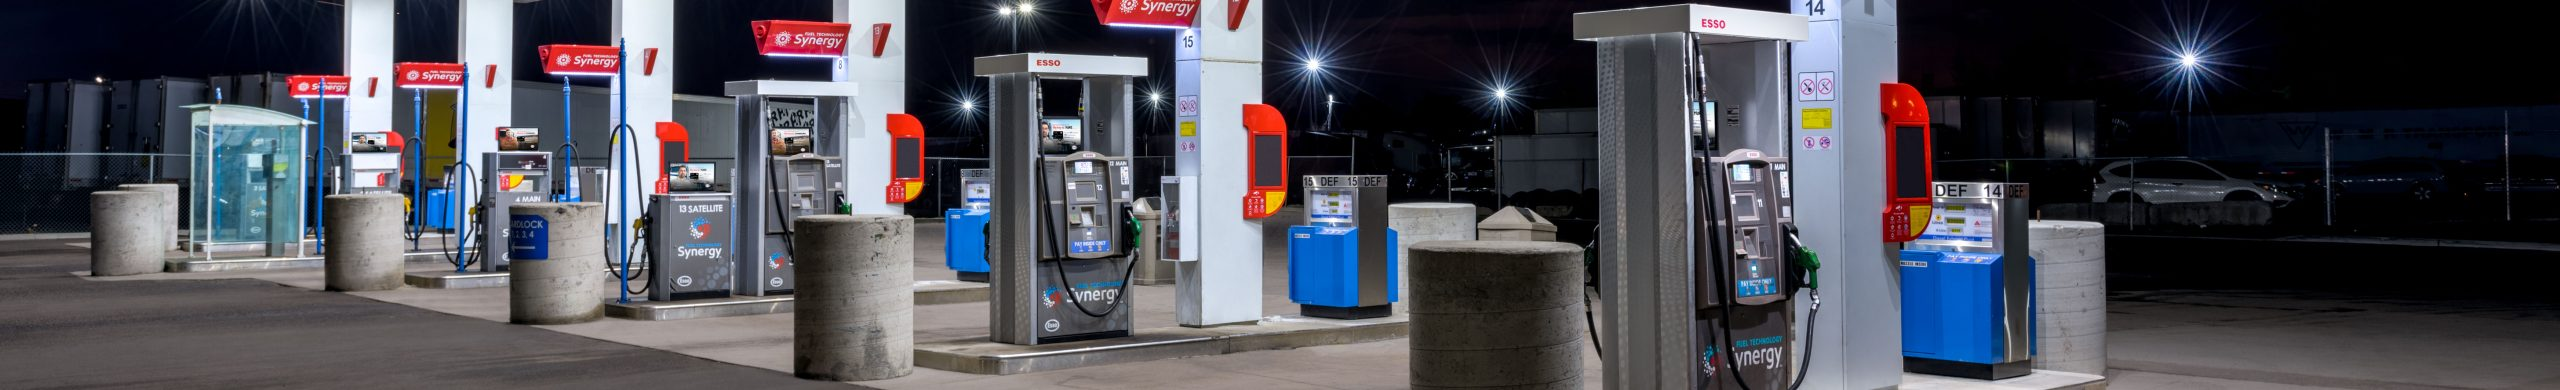 Photo of fuel dispensers beneath an Esso cardlock canopy at night